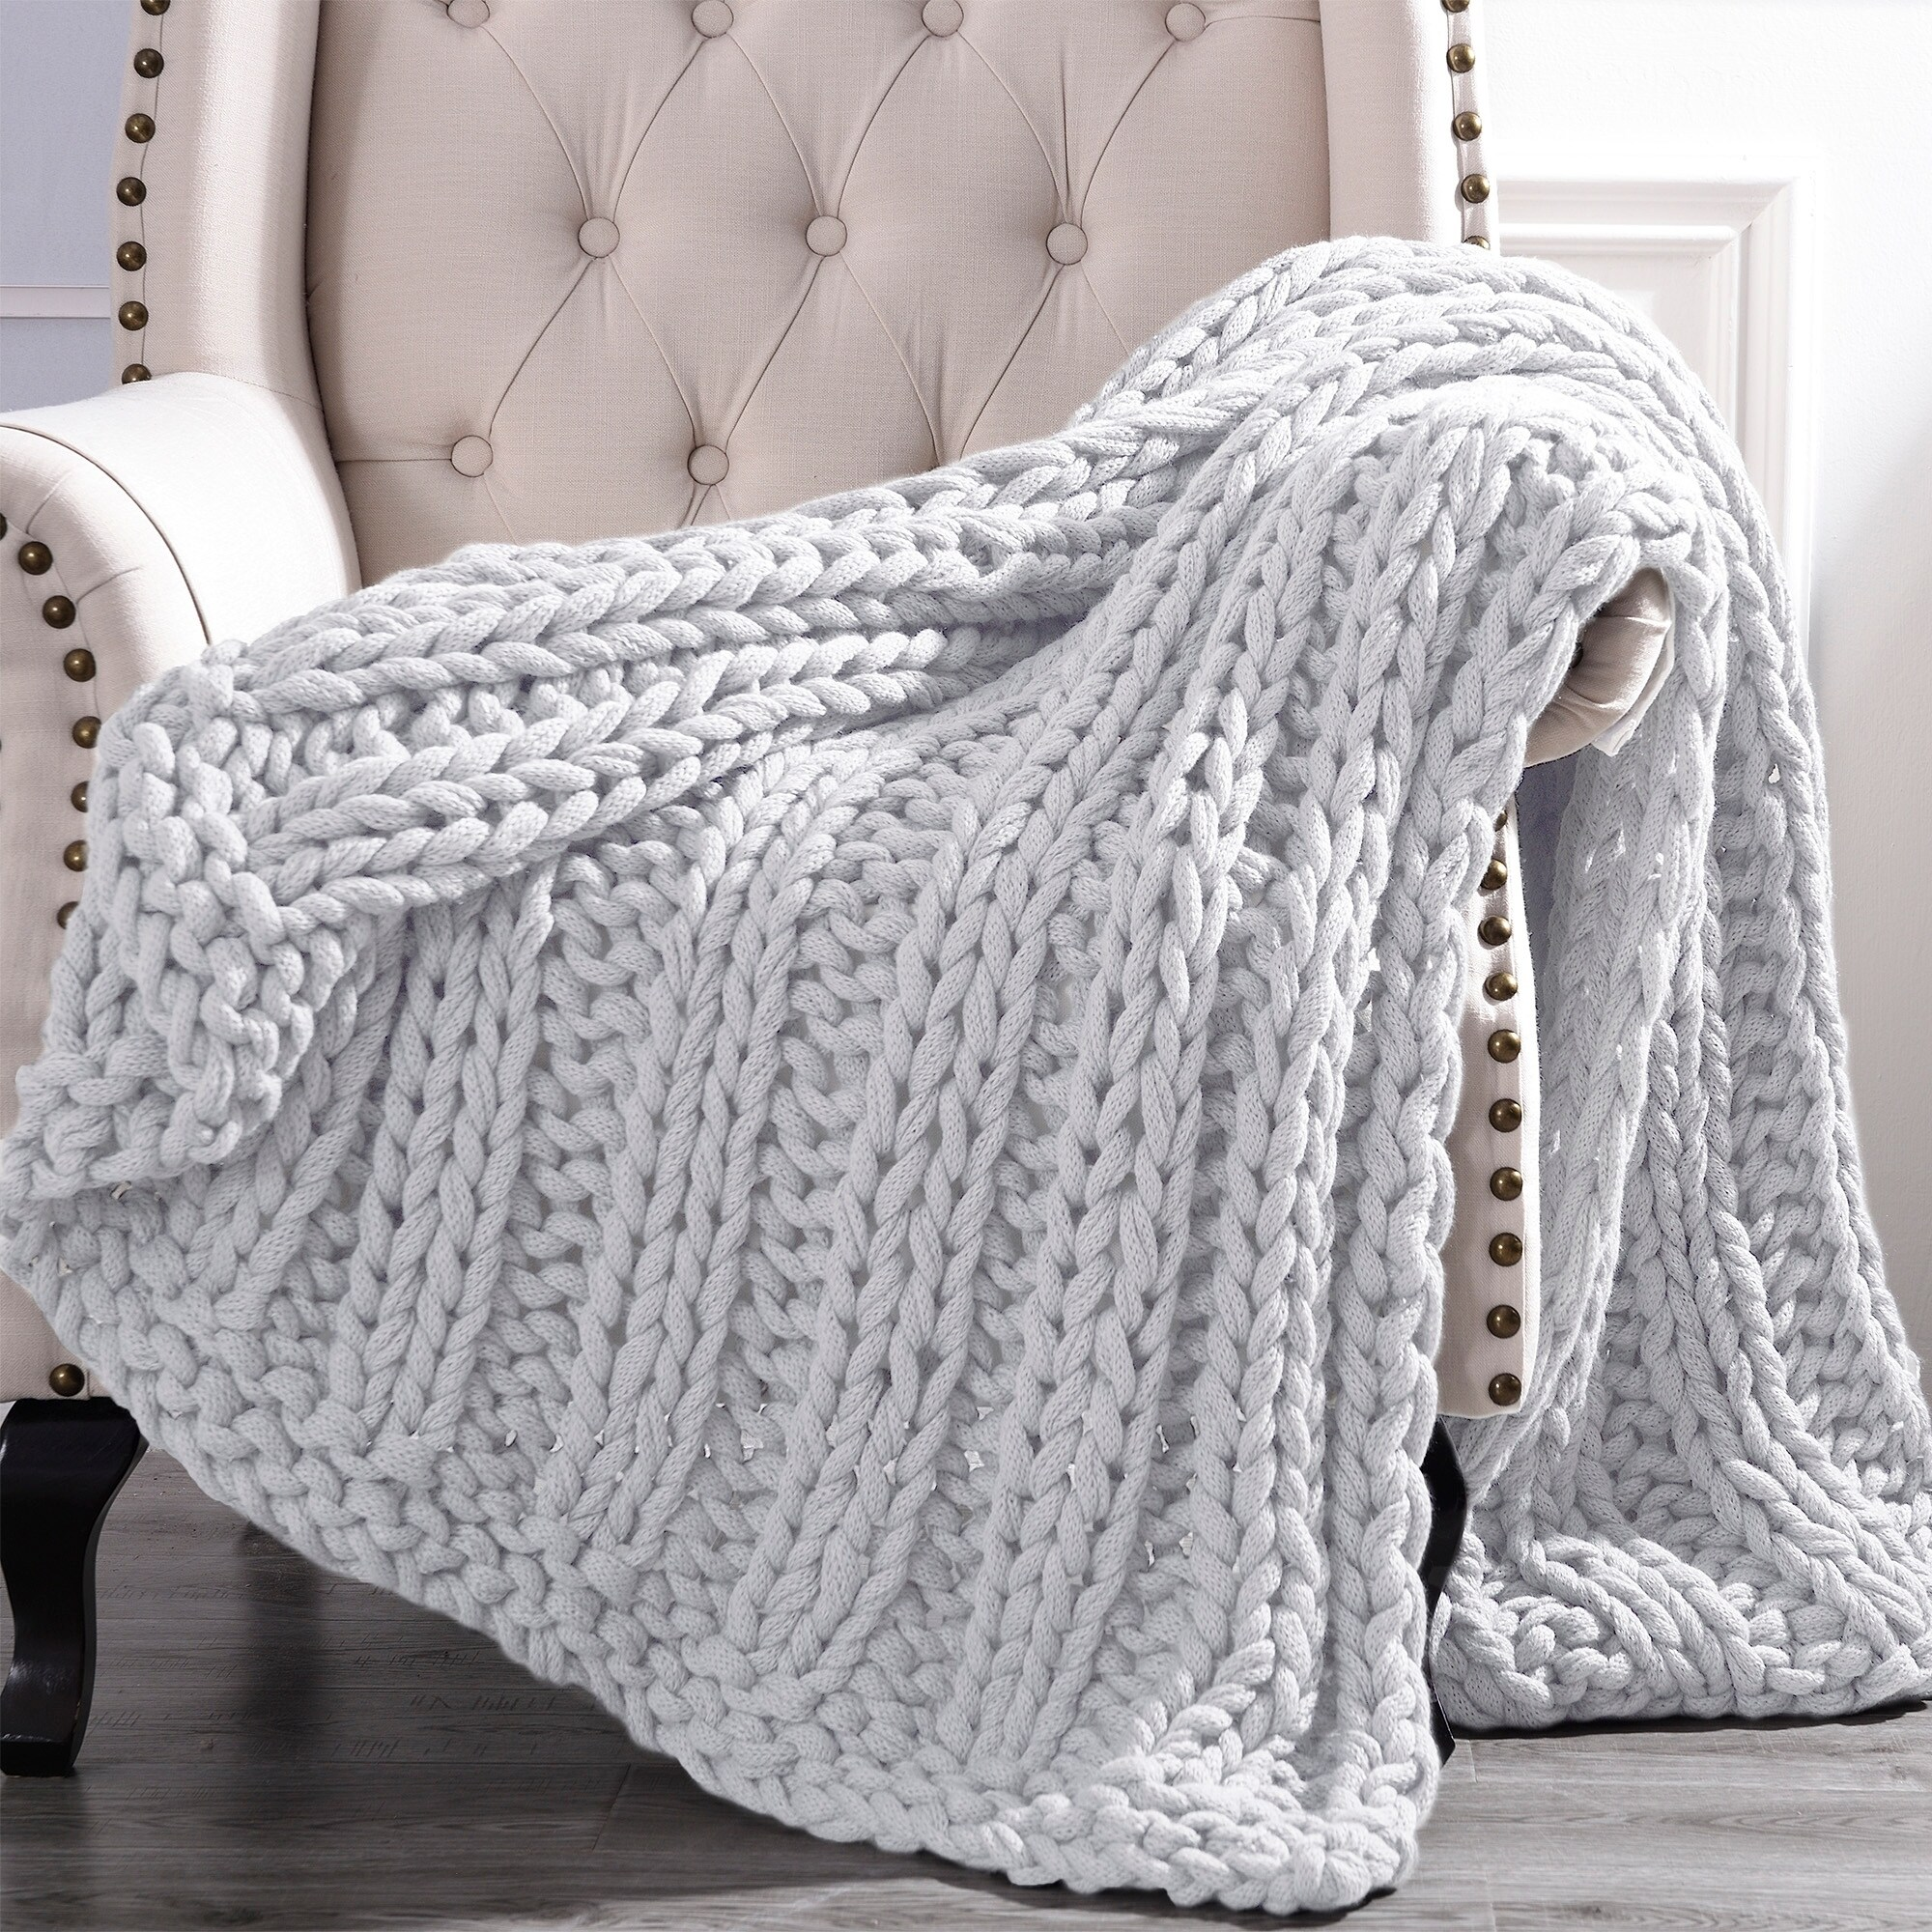 Sofa Throws Knitted Amrapur Overseas Luxury Chunky Knit Acrylic Bed Sofa Throw